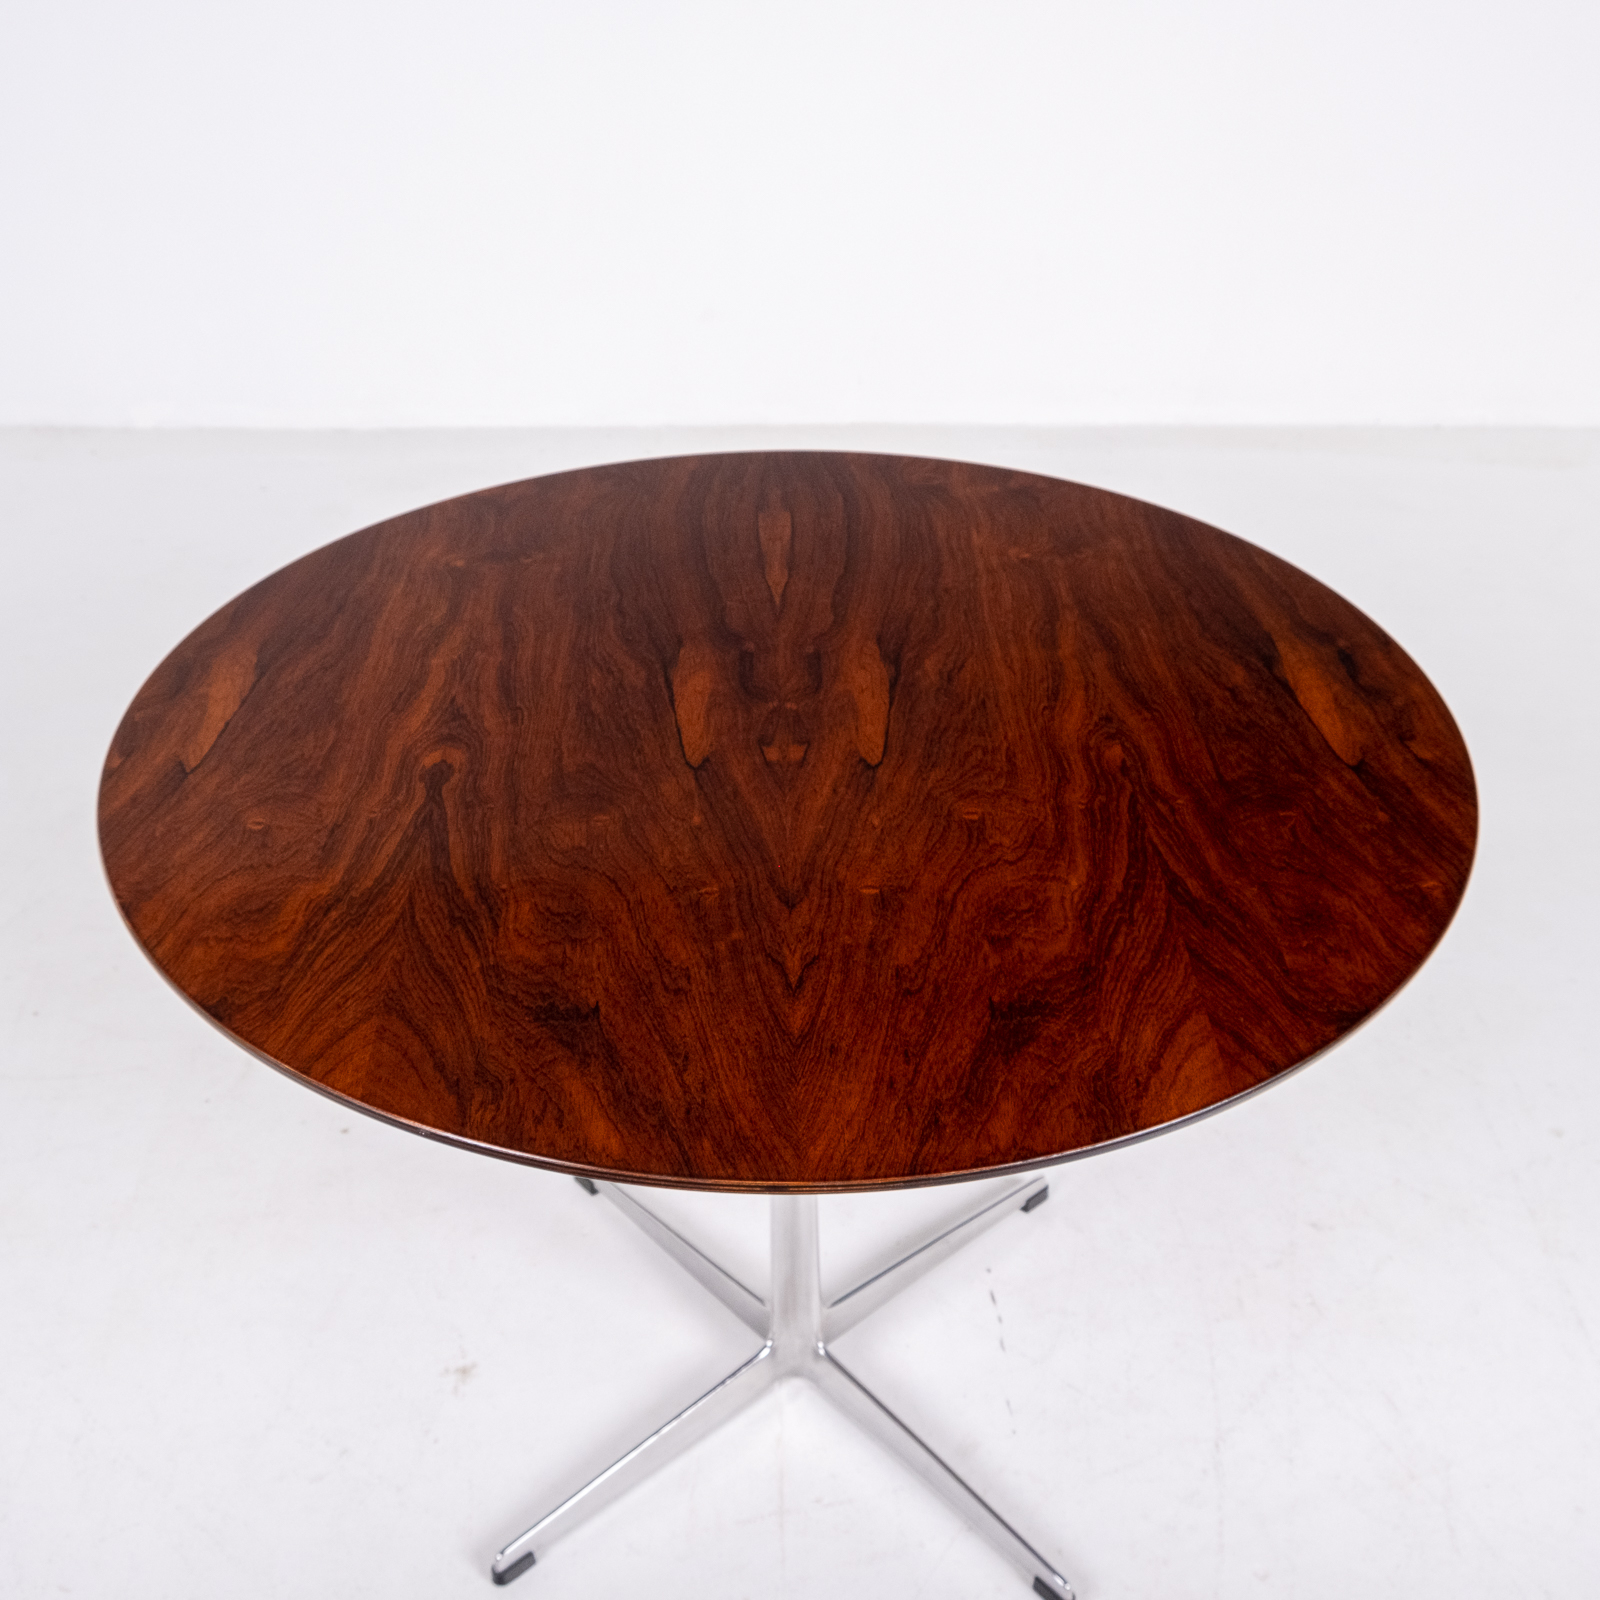 Cafe Table By Arne Jacobsen With Rosewood Top And Steel Pedestal Base, 1960s, Denmark 08